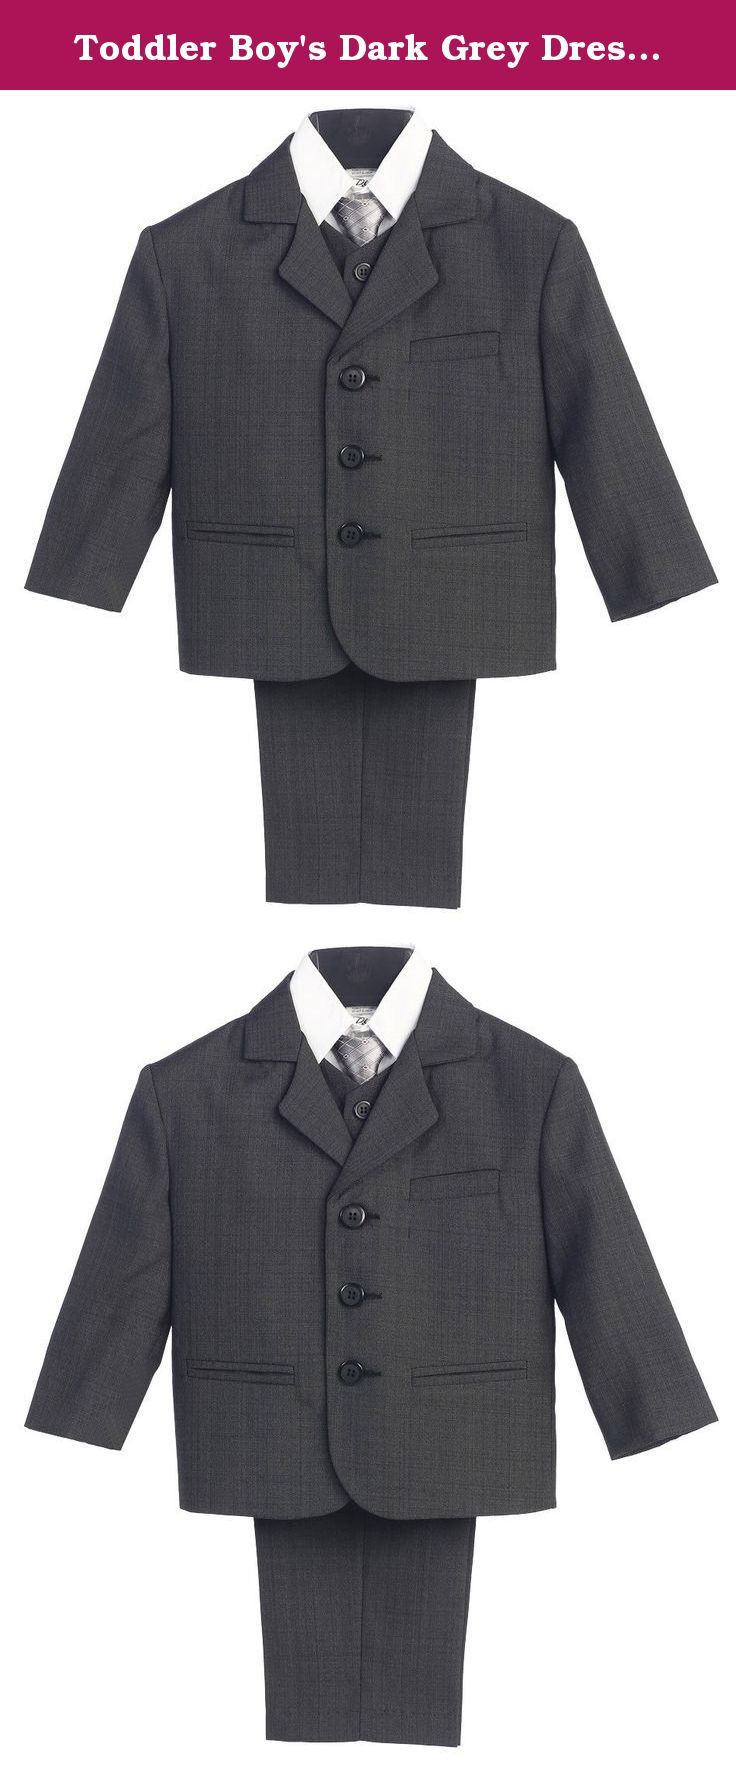 Toddler Boy's Dark Grey Dress Suit with Shirt Vest & Tie (5 Piece) - 2. The 5-Piece set includes a jacket with matching vest and pants, a white shirt and coordinating tie. Perfect for any special occasion. Infant, Toddler, Boy's Sizes (M-14) [Husky 8-20 in Black, Dark Grey, Light Grey, Navy, White]. (Suit: 100% Polyester / Shirt: 65% Polyester-35% Cotton). Made in the USA. Infant Sizes: M (6-9 Months), L (9-12 Months), XL (12-18 Months). Toddler Sizes: 2T, 3T, 4T. Boys Sizes: 5, 6, 7, 8…